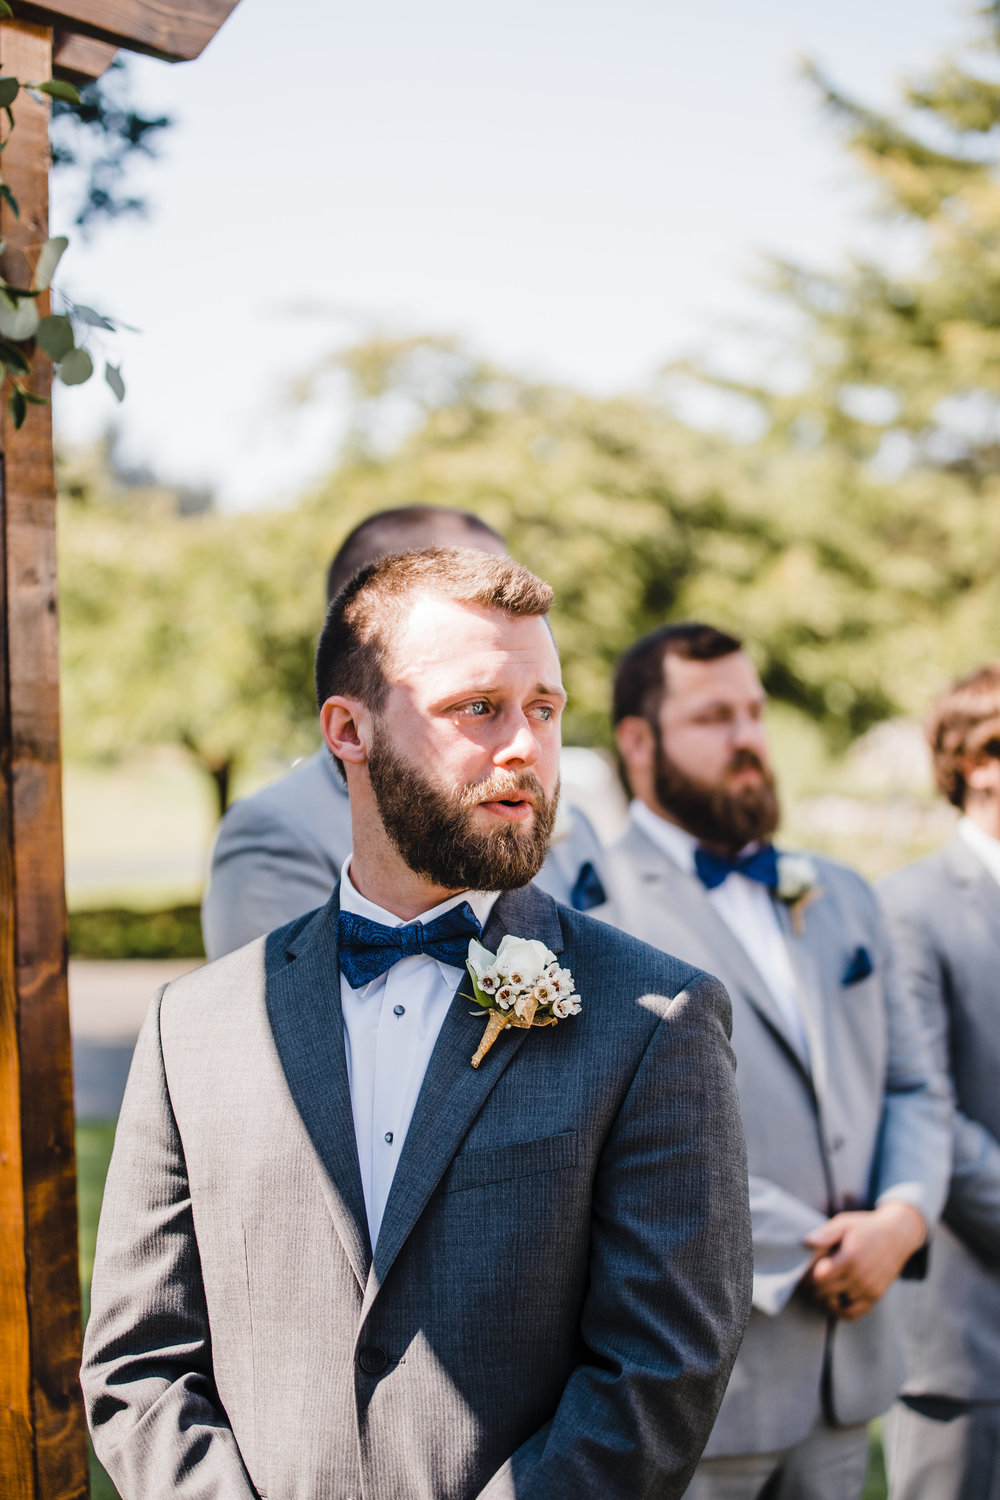 olympia washington professional wedding photographer first look outdoor wedding ceremony wedding arch grooms teary